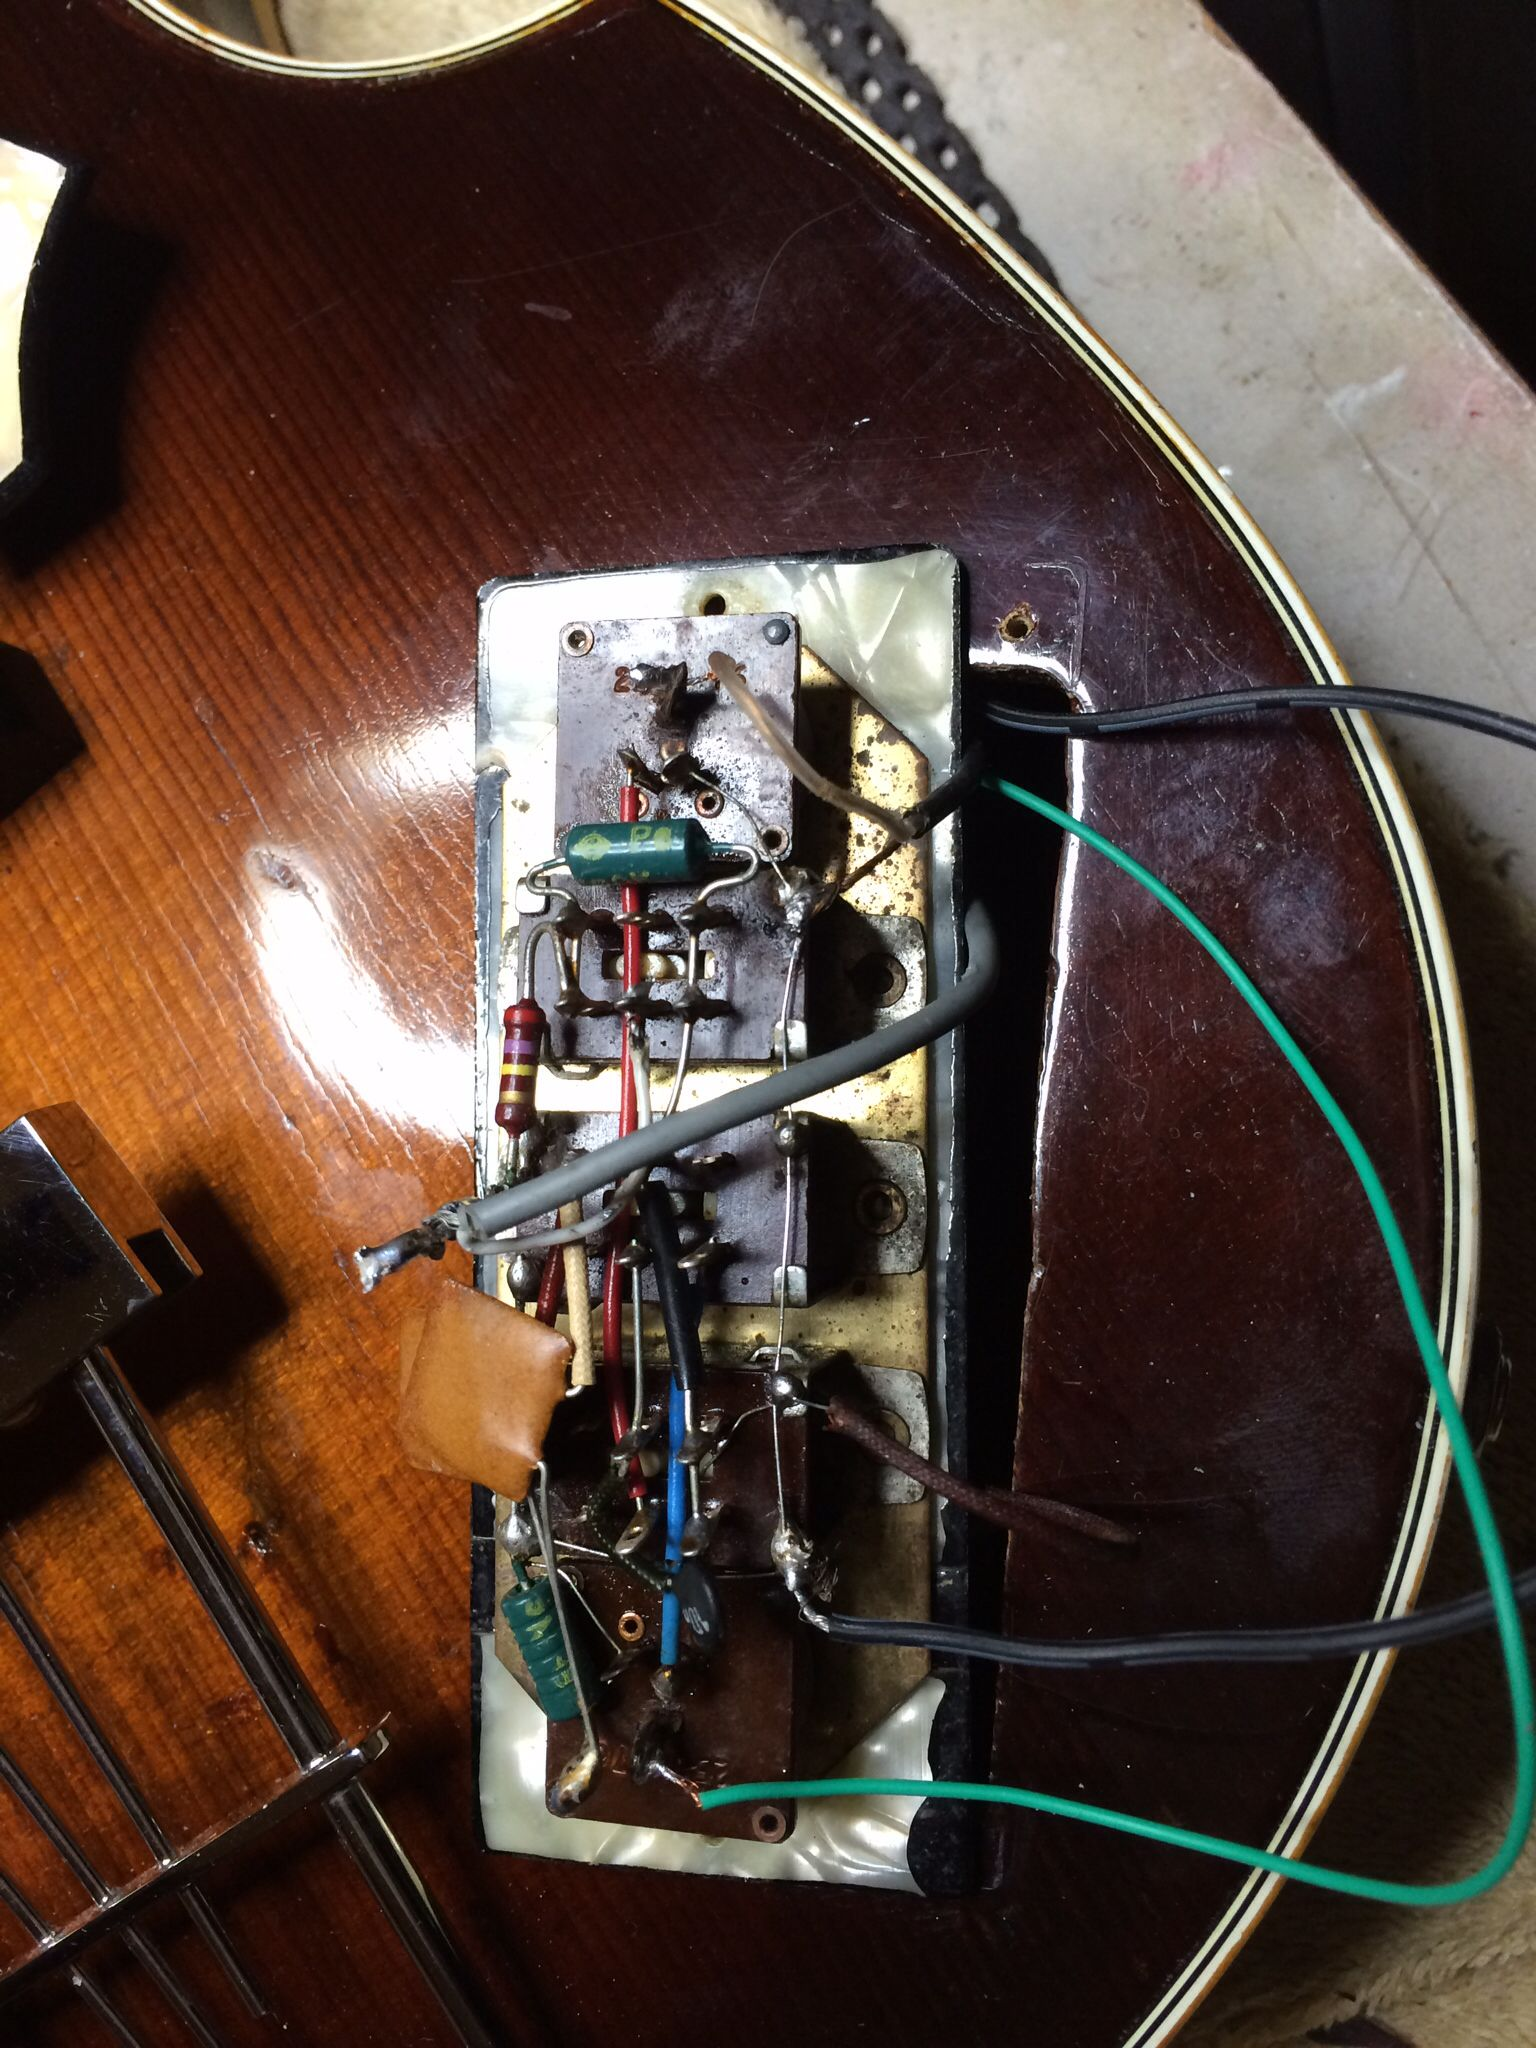 Hofner Wiring Diagram Free Download Suhr Guitars Diagrams 500 1 For Control Panel Pinterest Together With Shorty Moreover